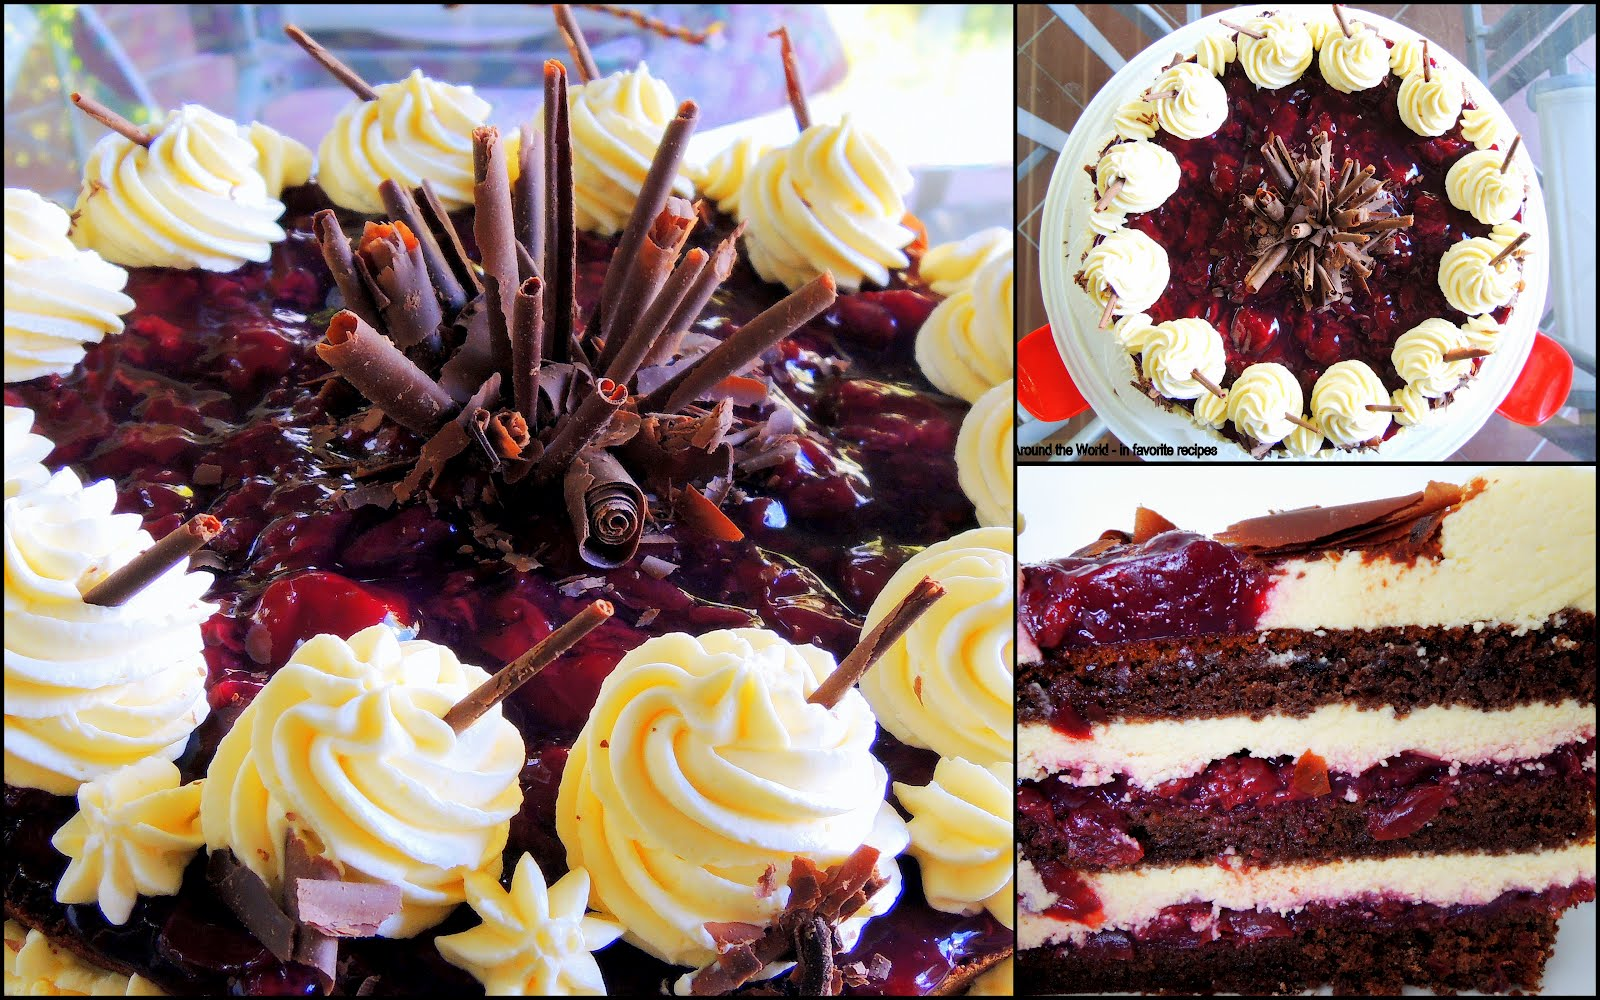 Around The World In Favorite Recipes Black Forest Cake